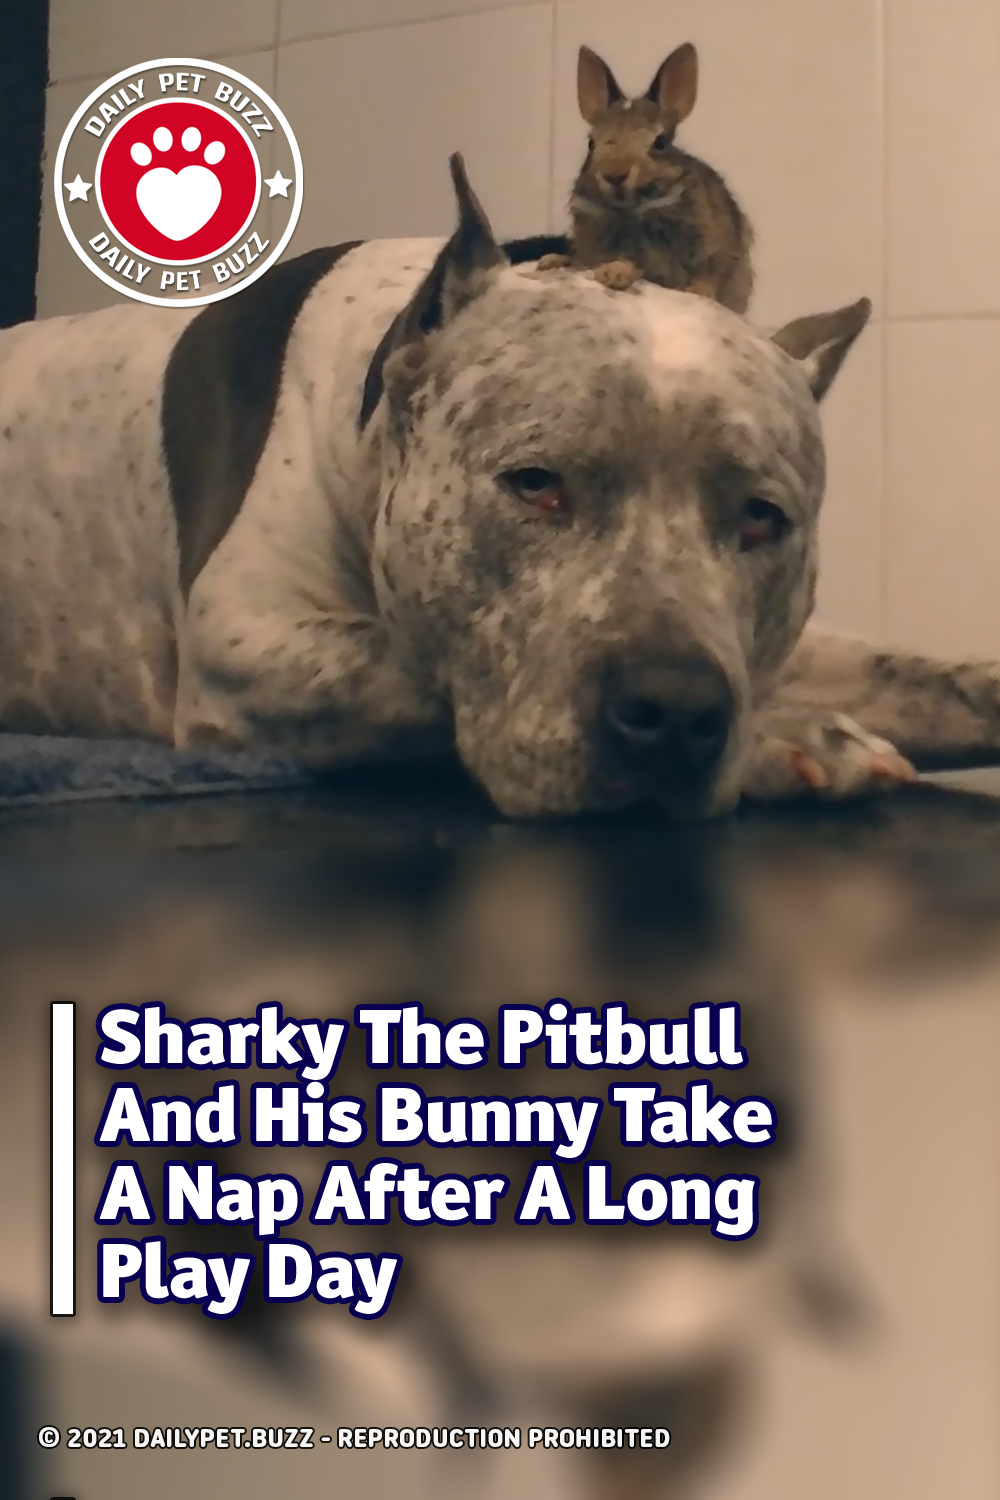 Sharky The Pitbull And His Bunny Take A Nap After A Long Play Day